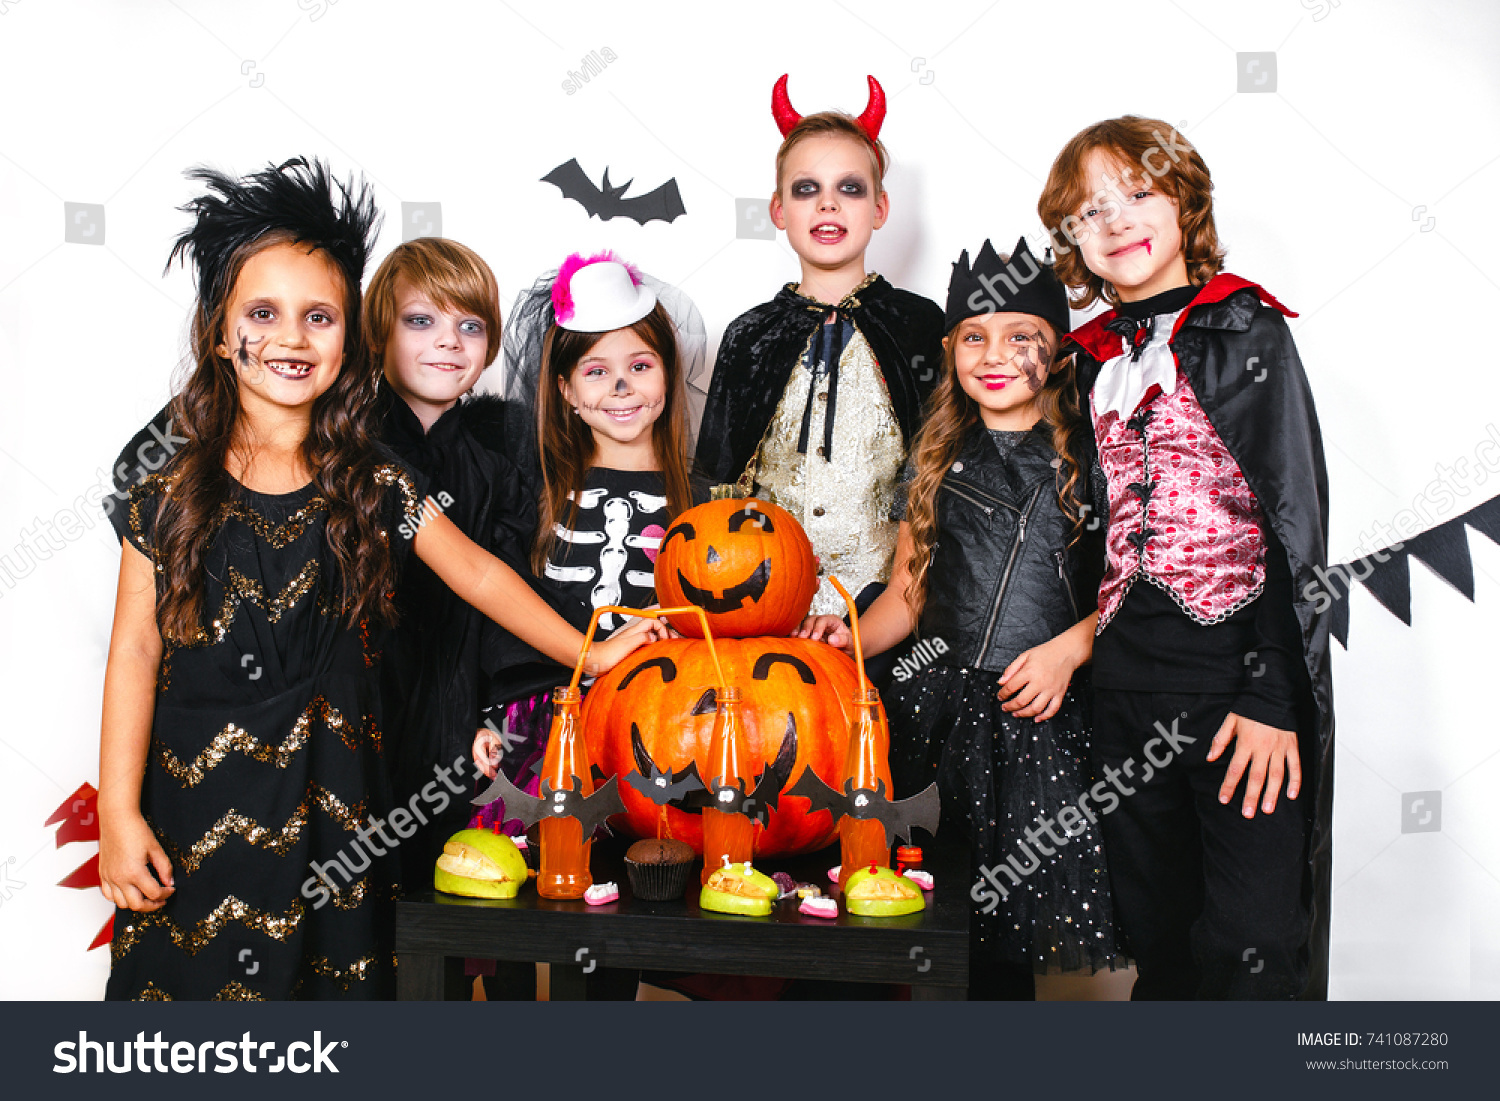 halloween party funny kids carnival costumes stock photo (edit now